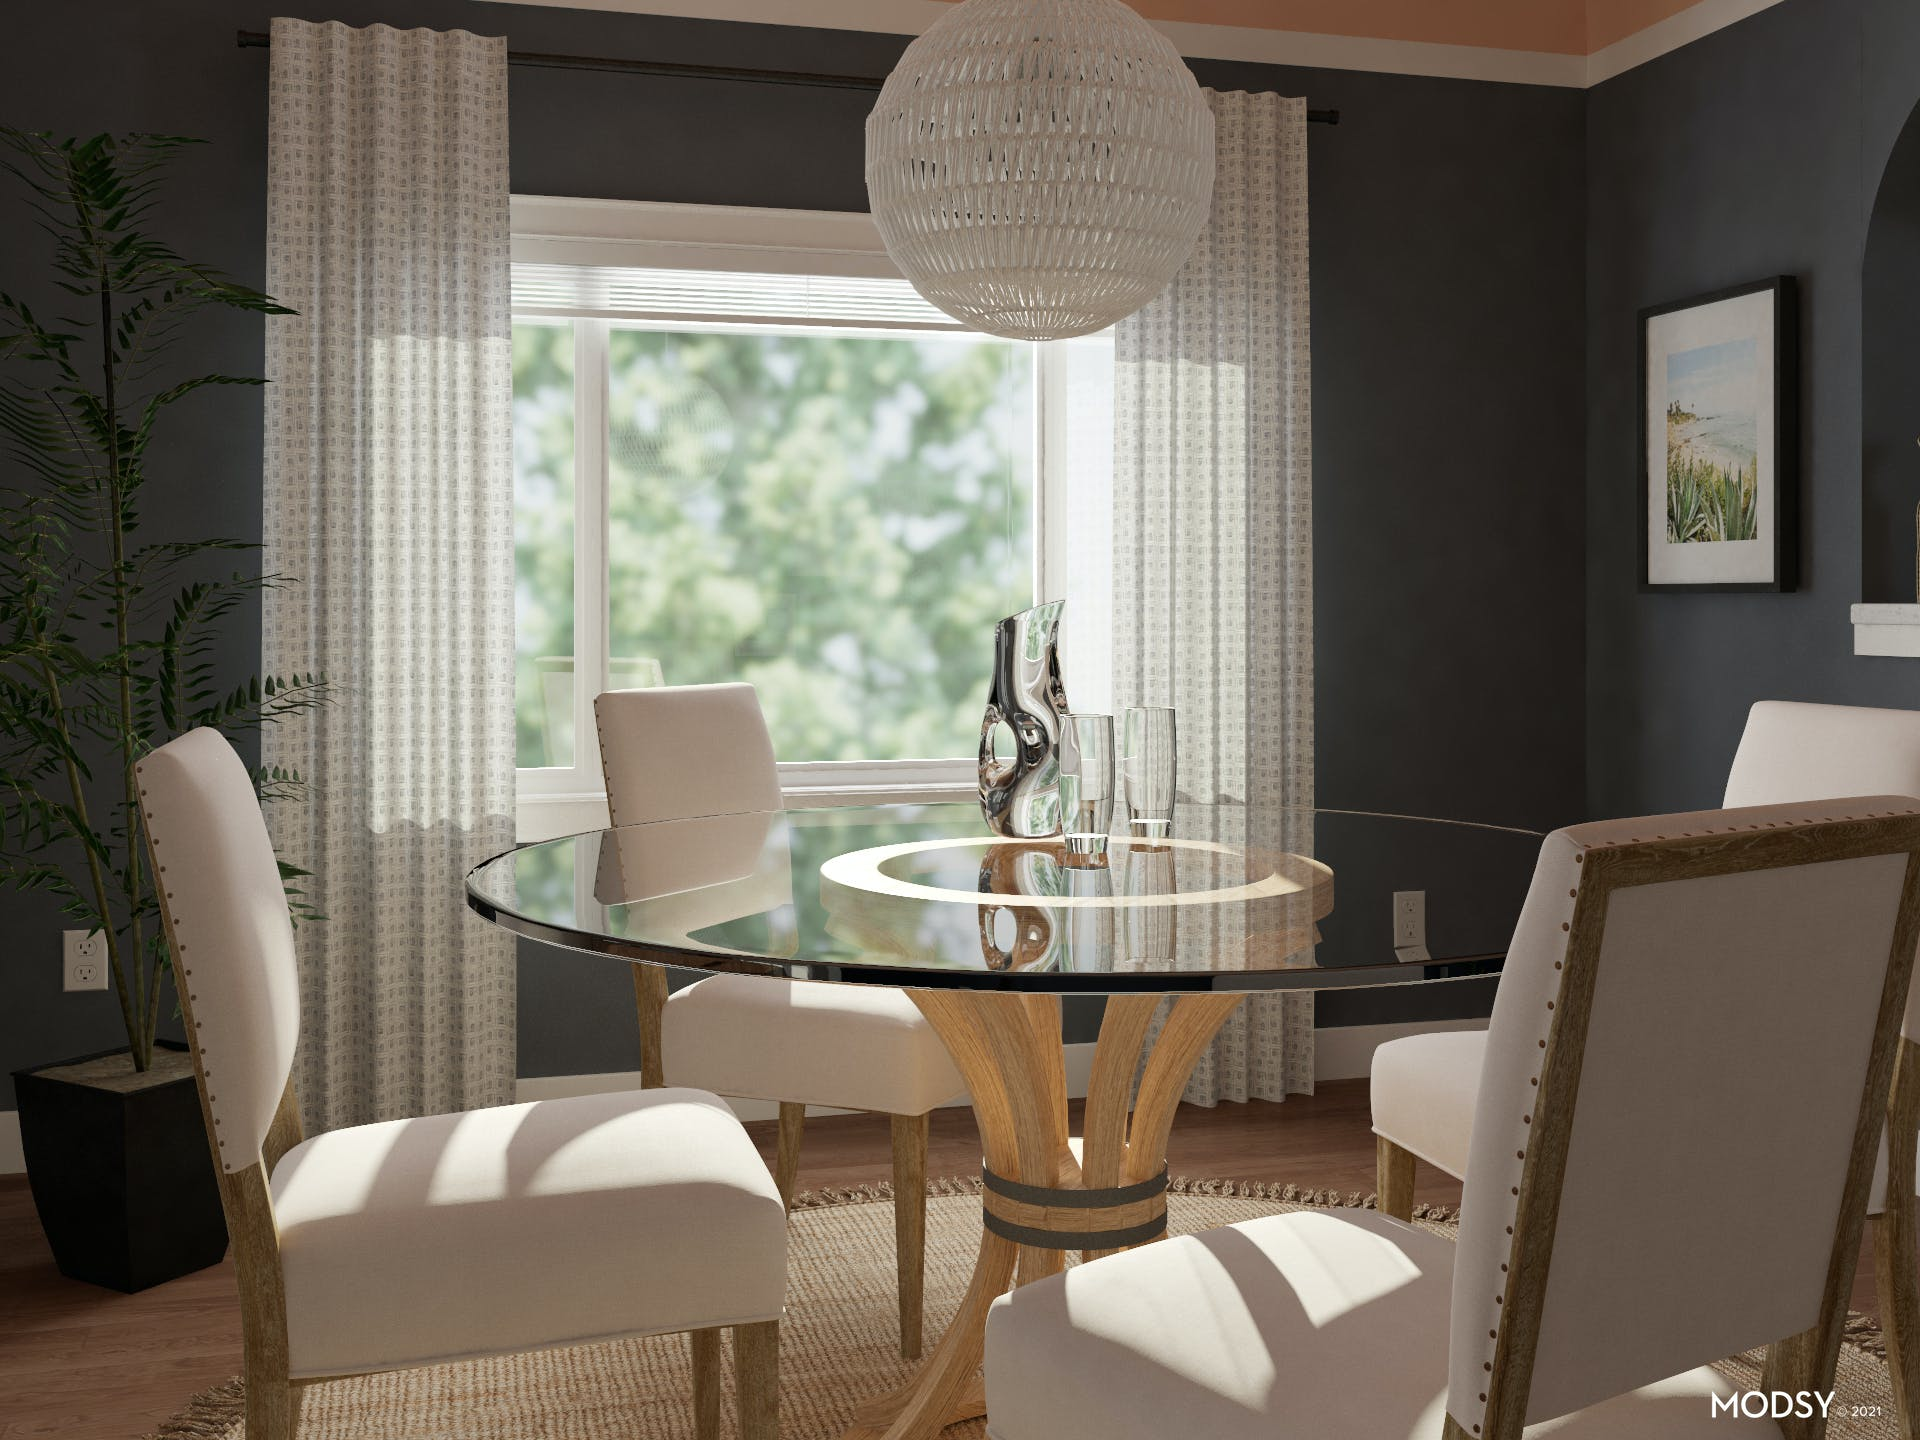 Glass Dining Table In A Small Space